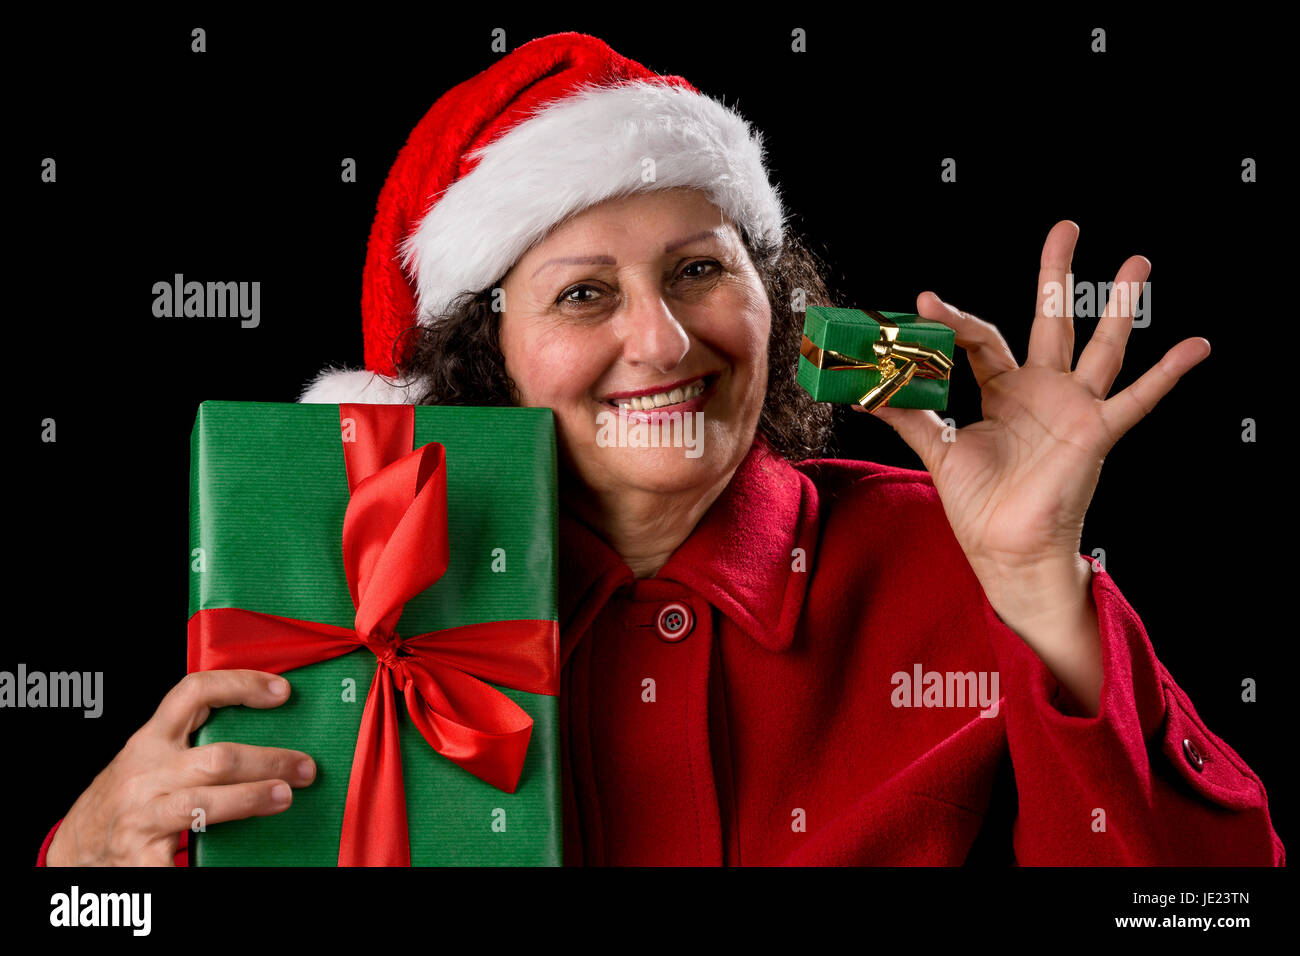 Aged lady is showing two wrapped Xmas presents, one small, one bigger. She is wearing a red coat and a Santa Claus - Stock Image